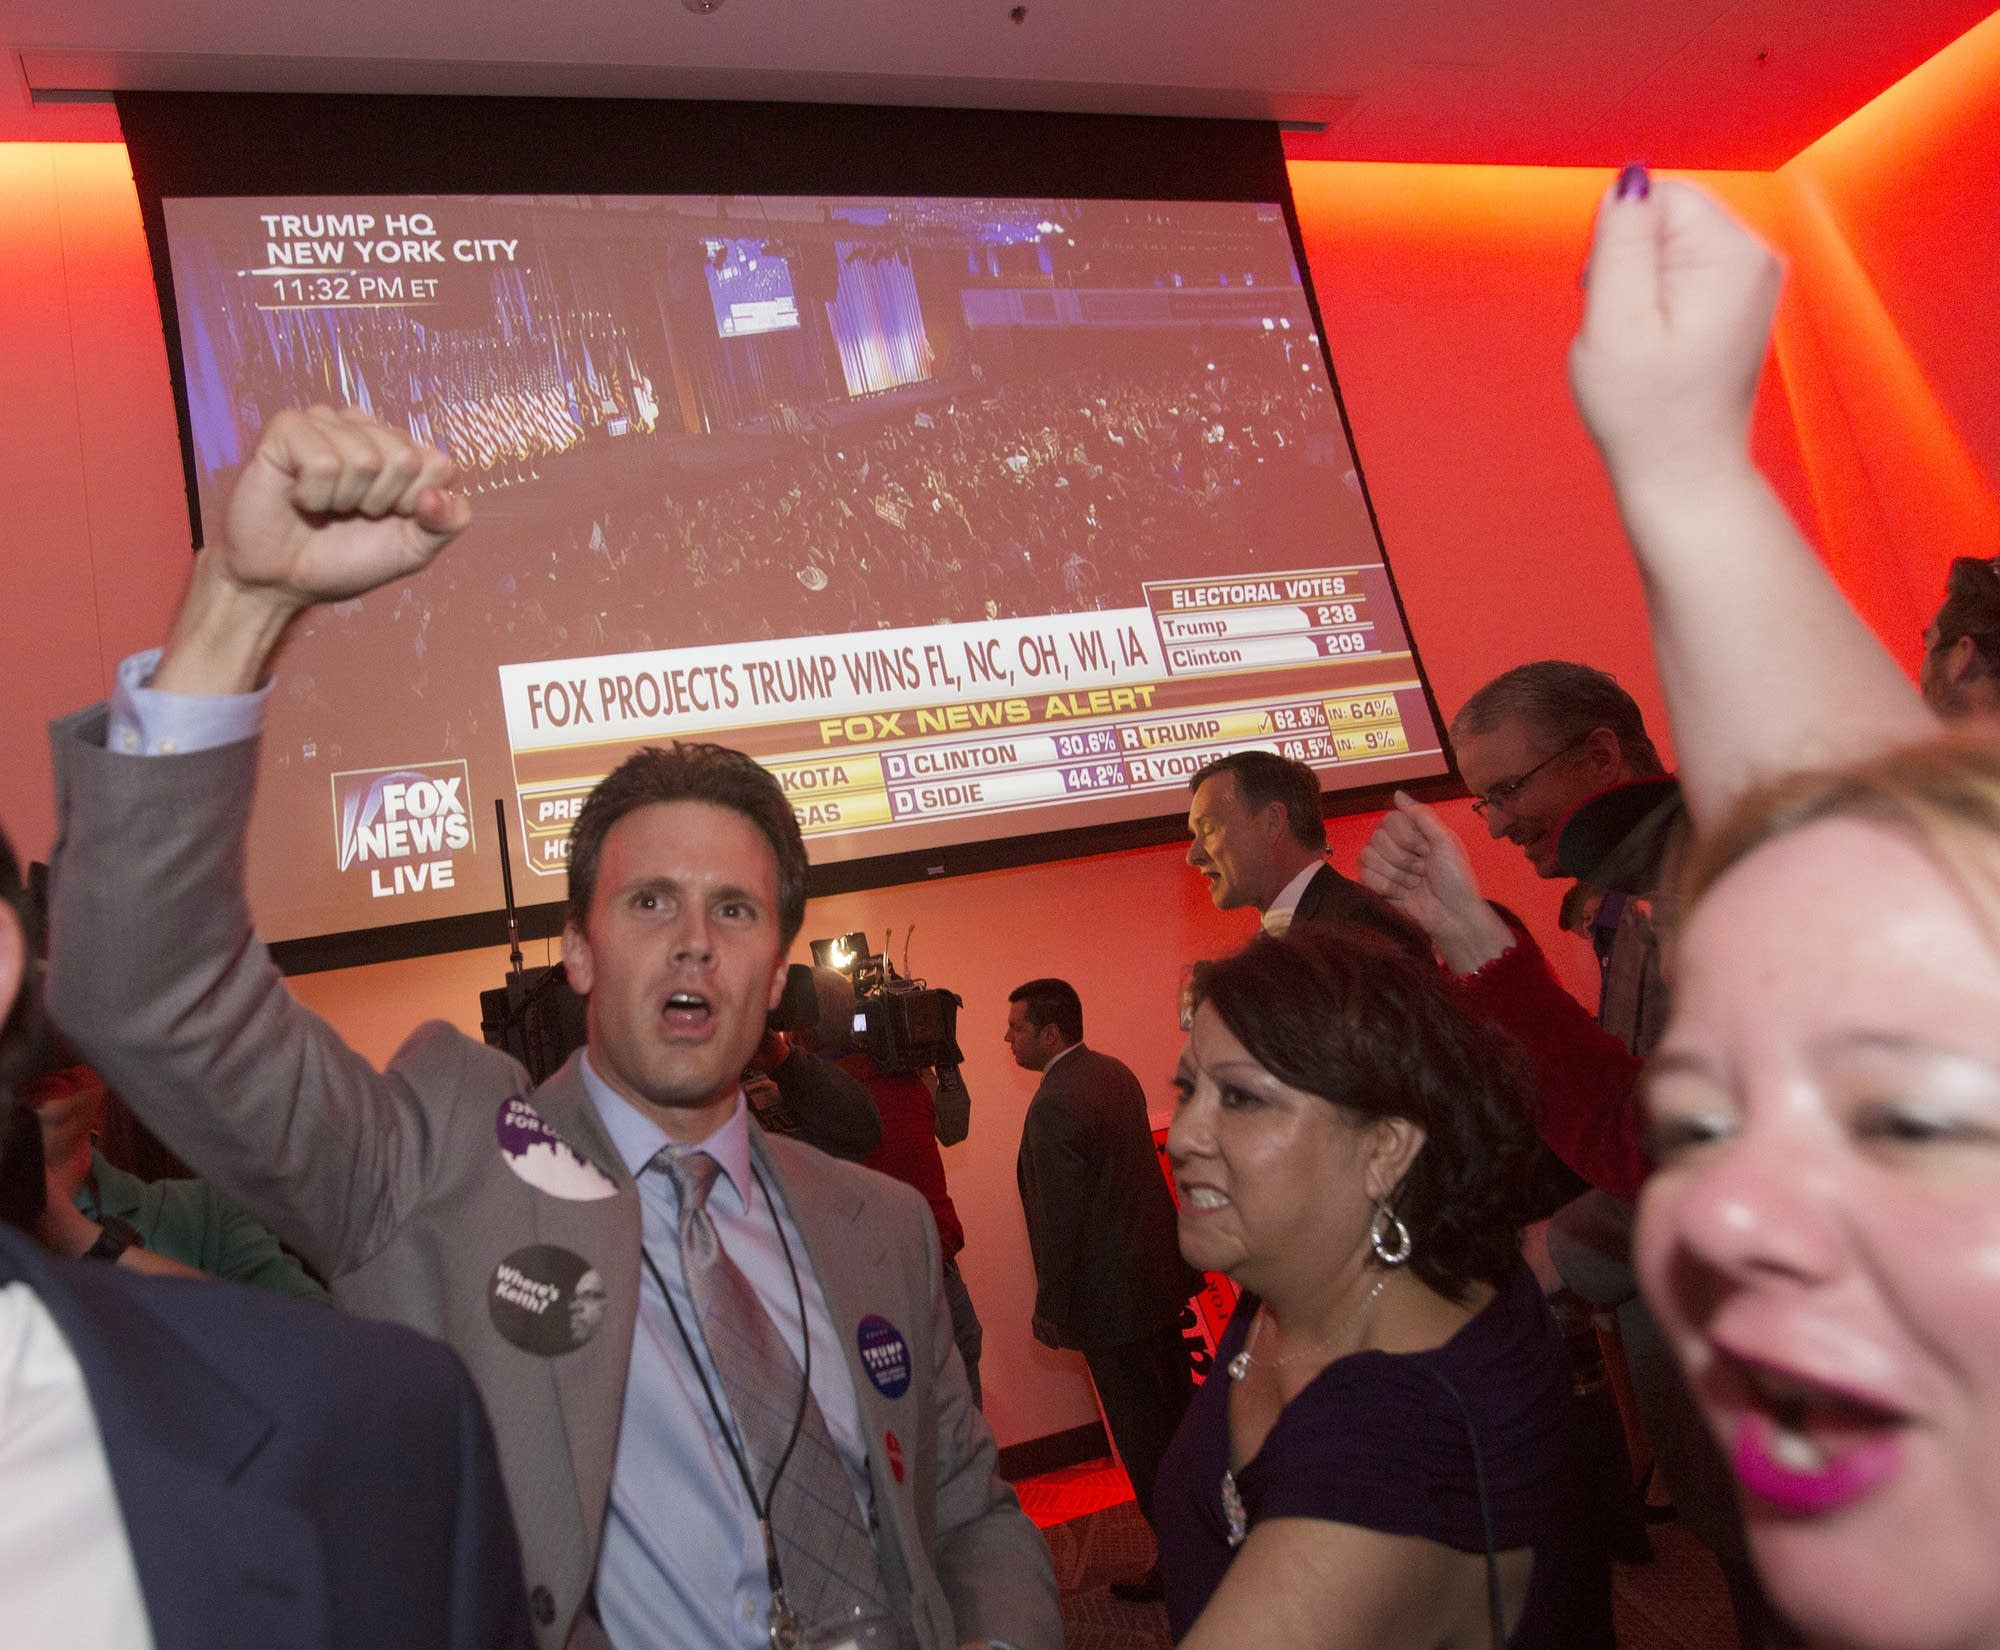 Scott Gregory of New Hope cheers as Fla. is called.